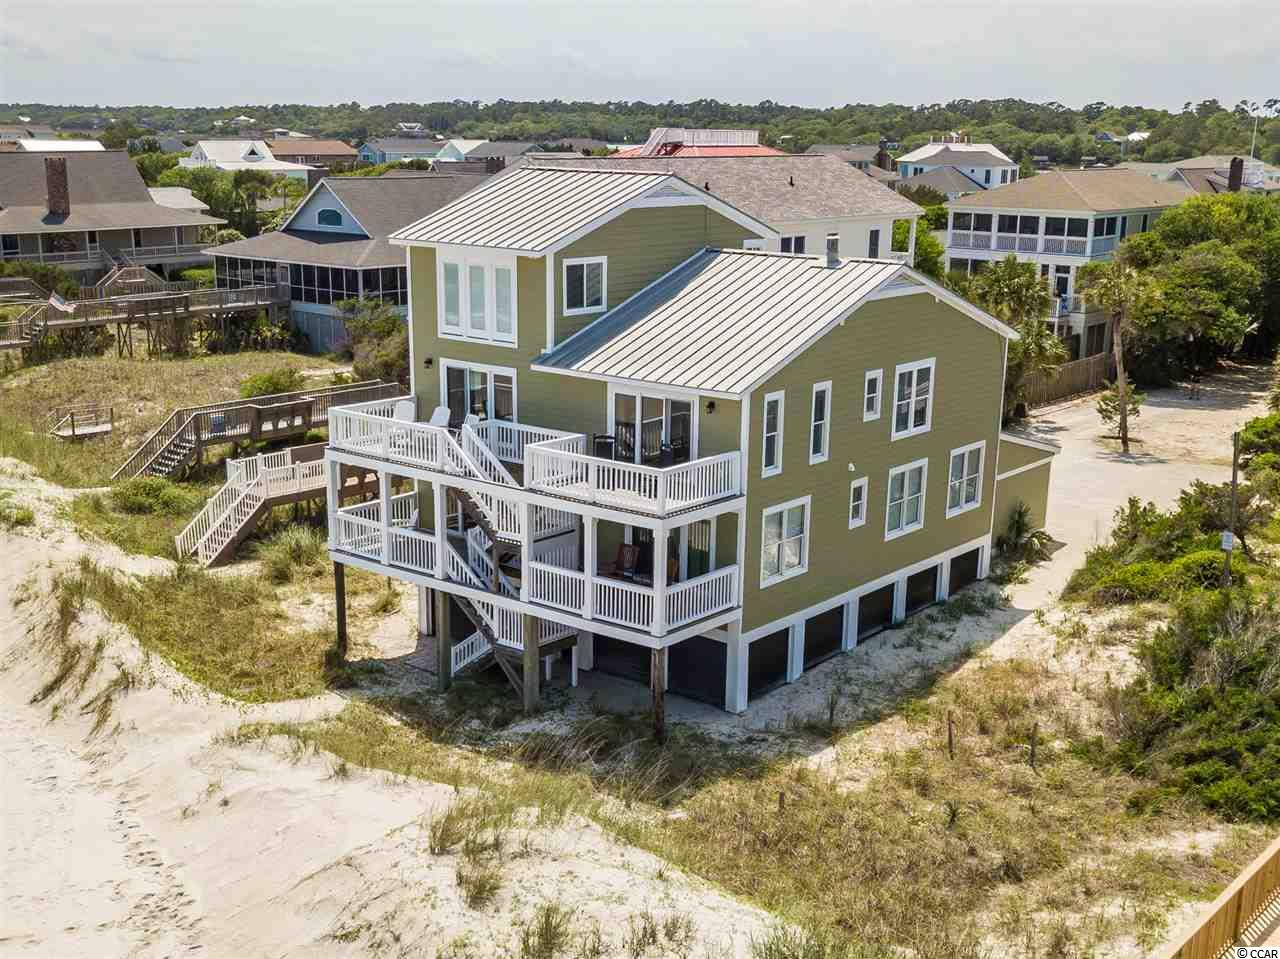 Panoramic Oceanfront views invite you to sit back and relax on one of the multiple front decks. RECENTLY RENOVATED- top to bottom/and  inside and out with meticulous care- this Luxury home is on the premier north end of Pawleys Island. Turn-key, its beautifully decorated and comes furnished, ready for you now! Come take a peek at all the new renovations-Gorgeous chef's kitchen to delight with new granite counters, center Island, new appliances, cabinets, new lighting. The kitchen was opened up to include a 2nd den/conversation room. All bathrooms  completely renovated,  include ship lapped walls and new vanities, lighting etc.  Too many things to list.  Entertaining is a breeze with all the open space and sliding doors that open to decks. Another space to entertain on a top loft. Updates include new windows, doors, painting inside and out, replaced back deck and decking supports. With A total of 6 bedrooms plus a loft w 2twins, this home easily sleeps 14.  Three of the bedrooms have oceanfront decks. A rare find, this home would be perfect for a primary residence or 2nd home. 4th of July Parade marches right in front.